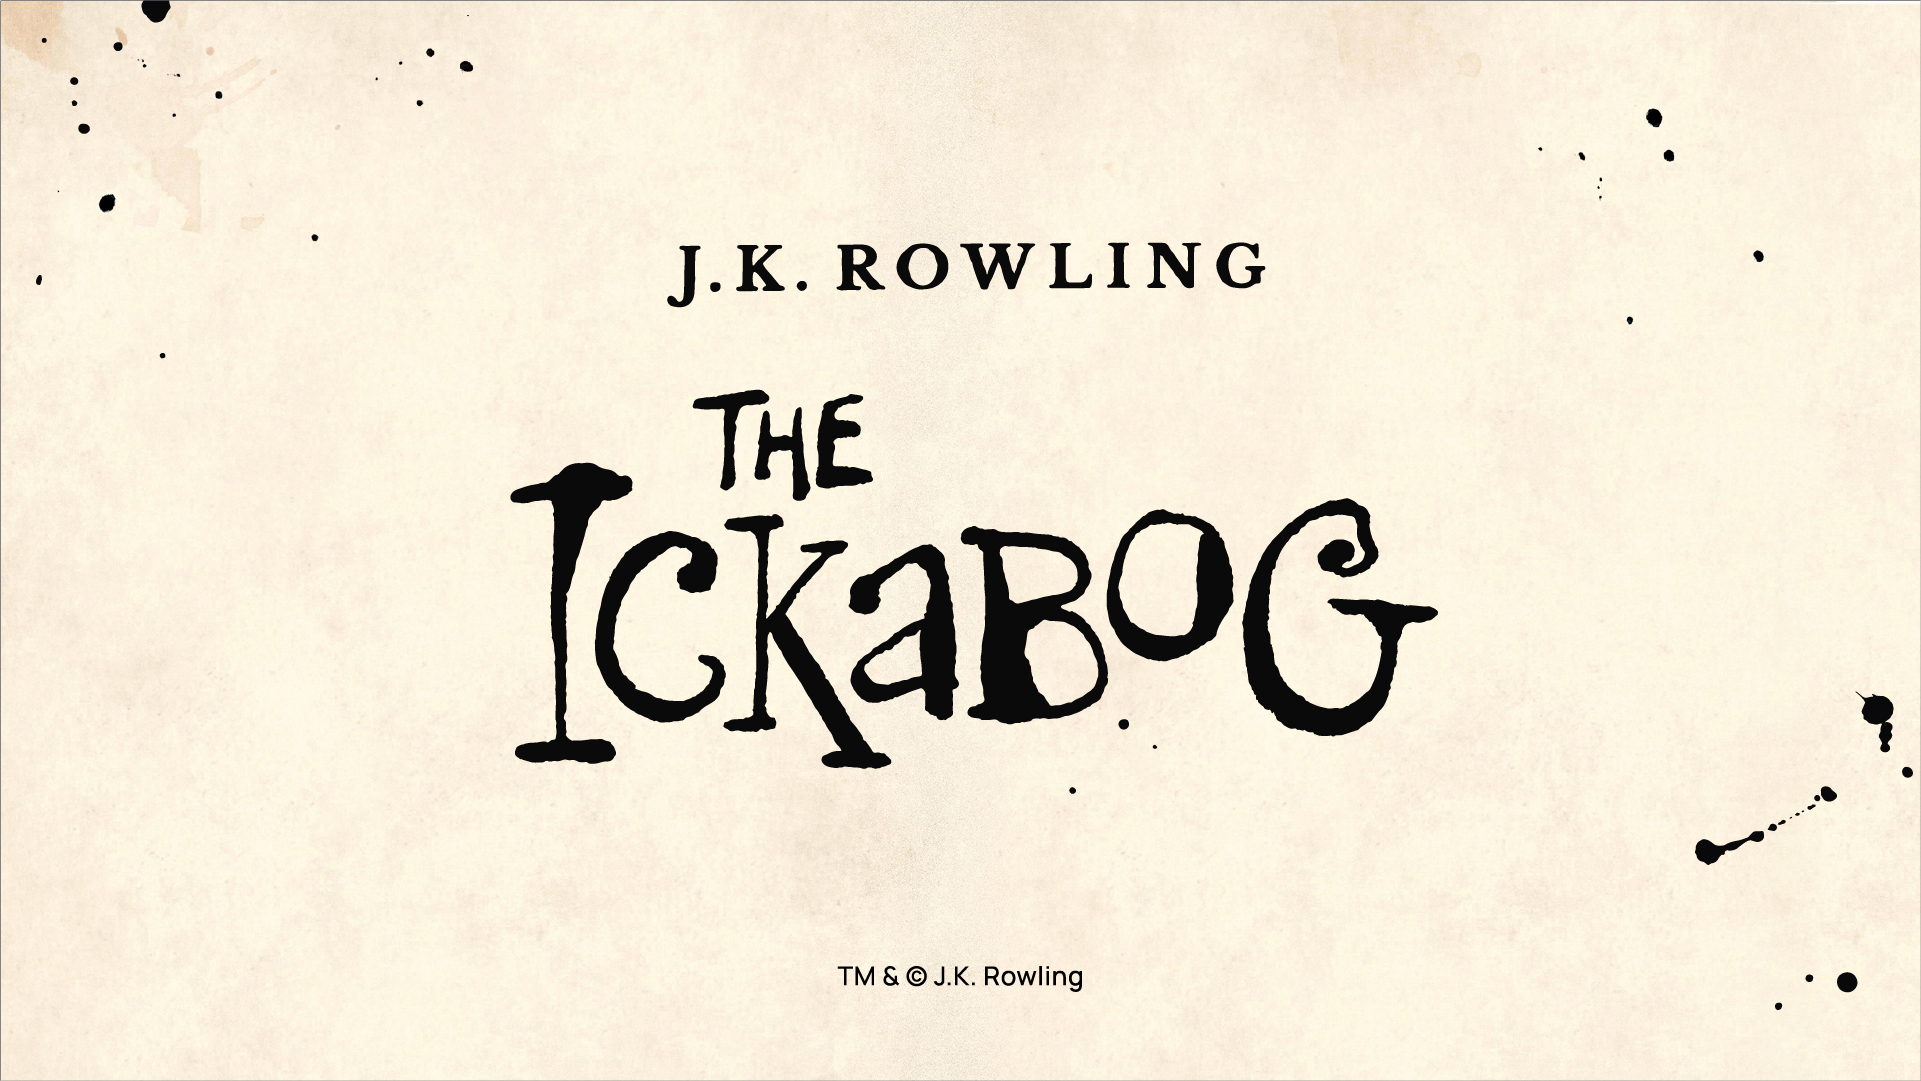 J.K. Rowling Introduces The Ickabog - J.K. Rowling